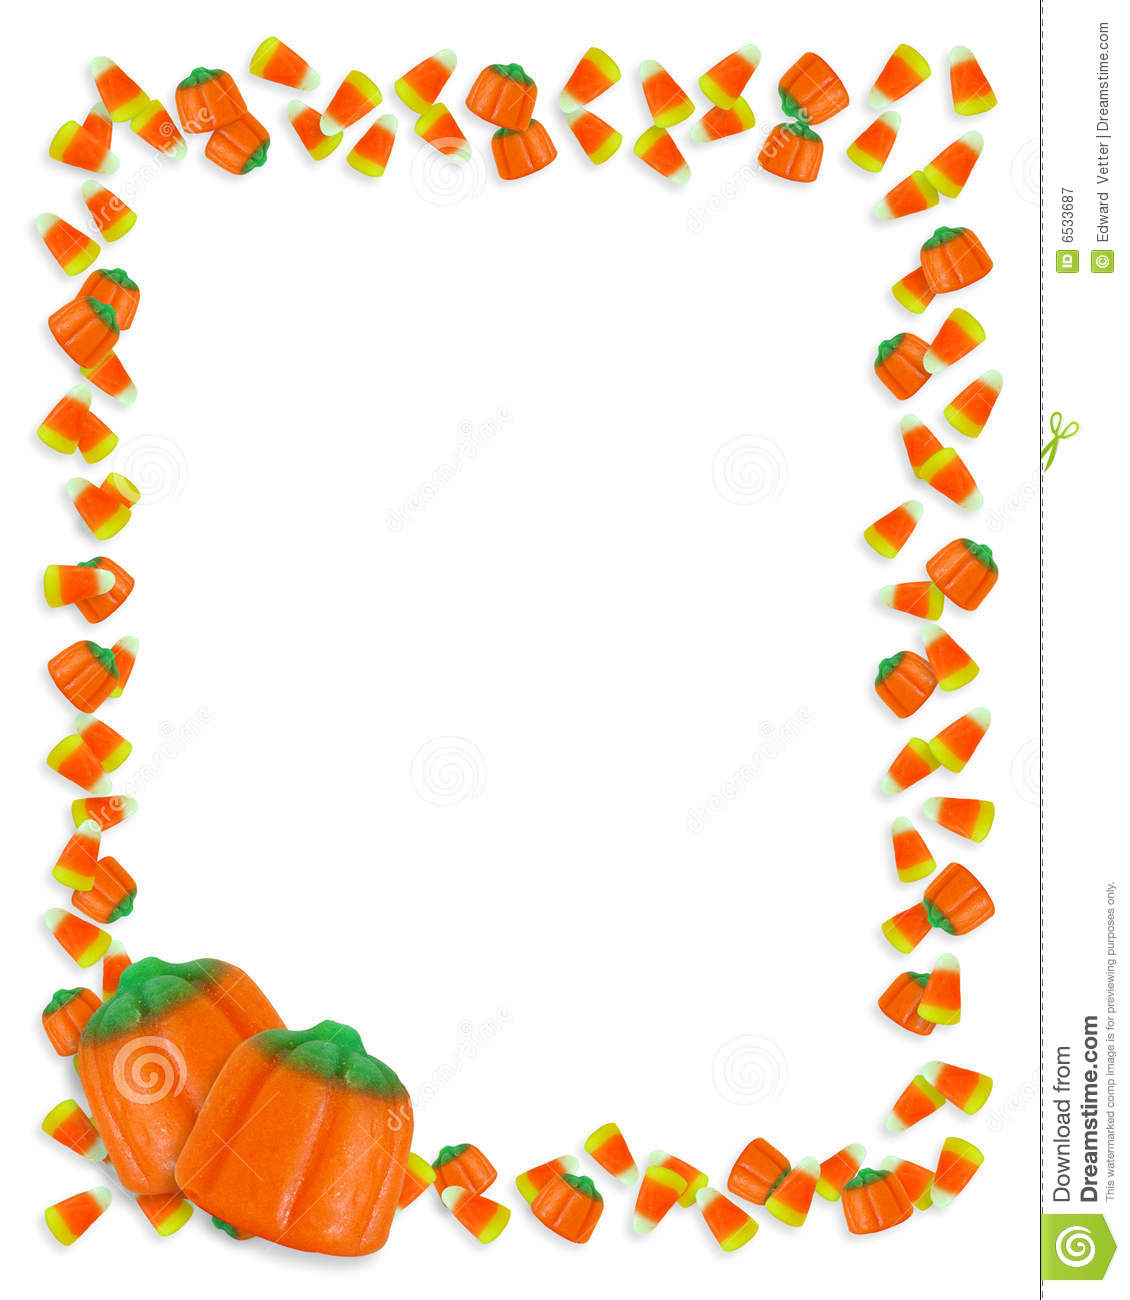 Halloween Border Candy Corn Royalty Free-Halloween Border Candy Corn Royalty Free Stock Photography Image-19